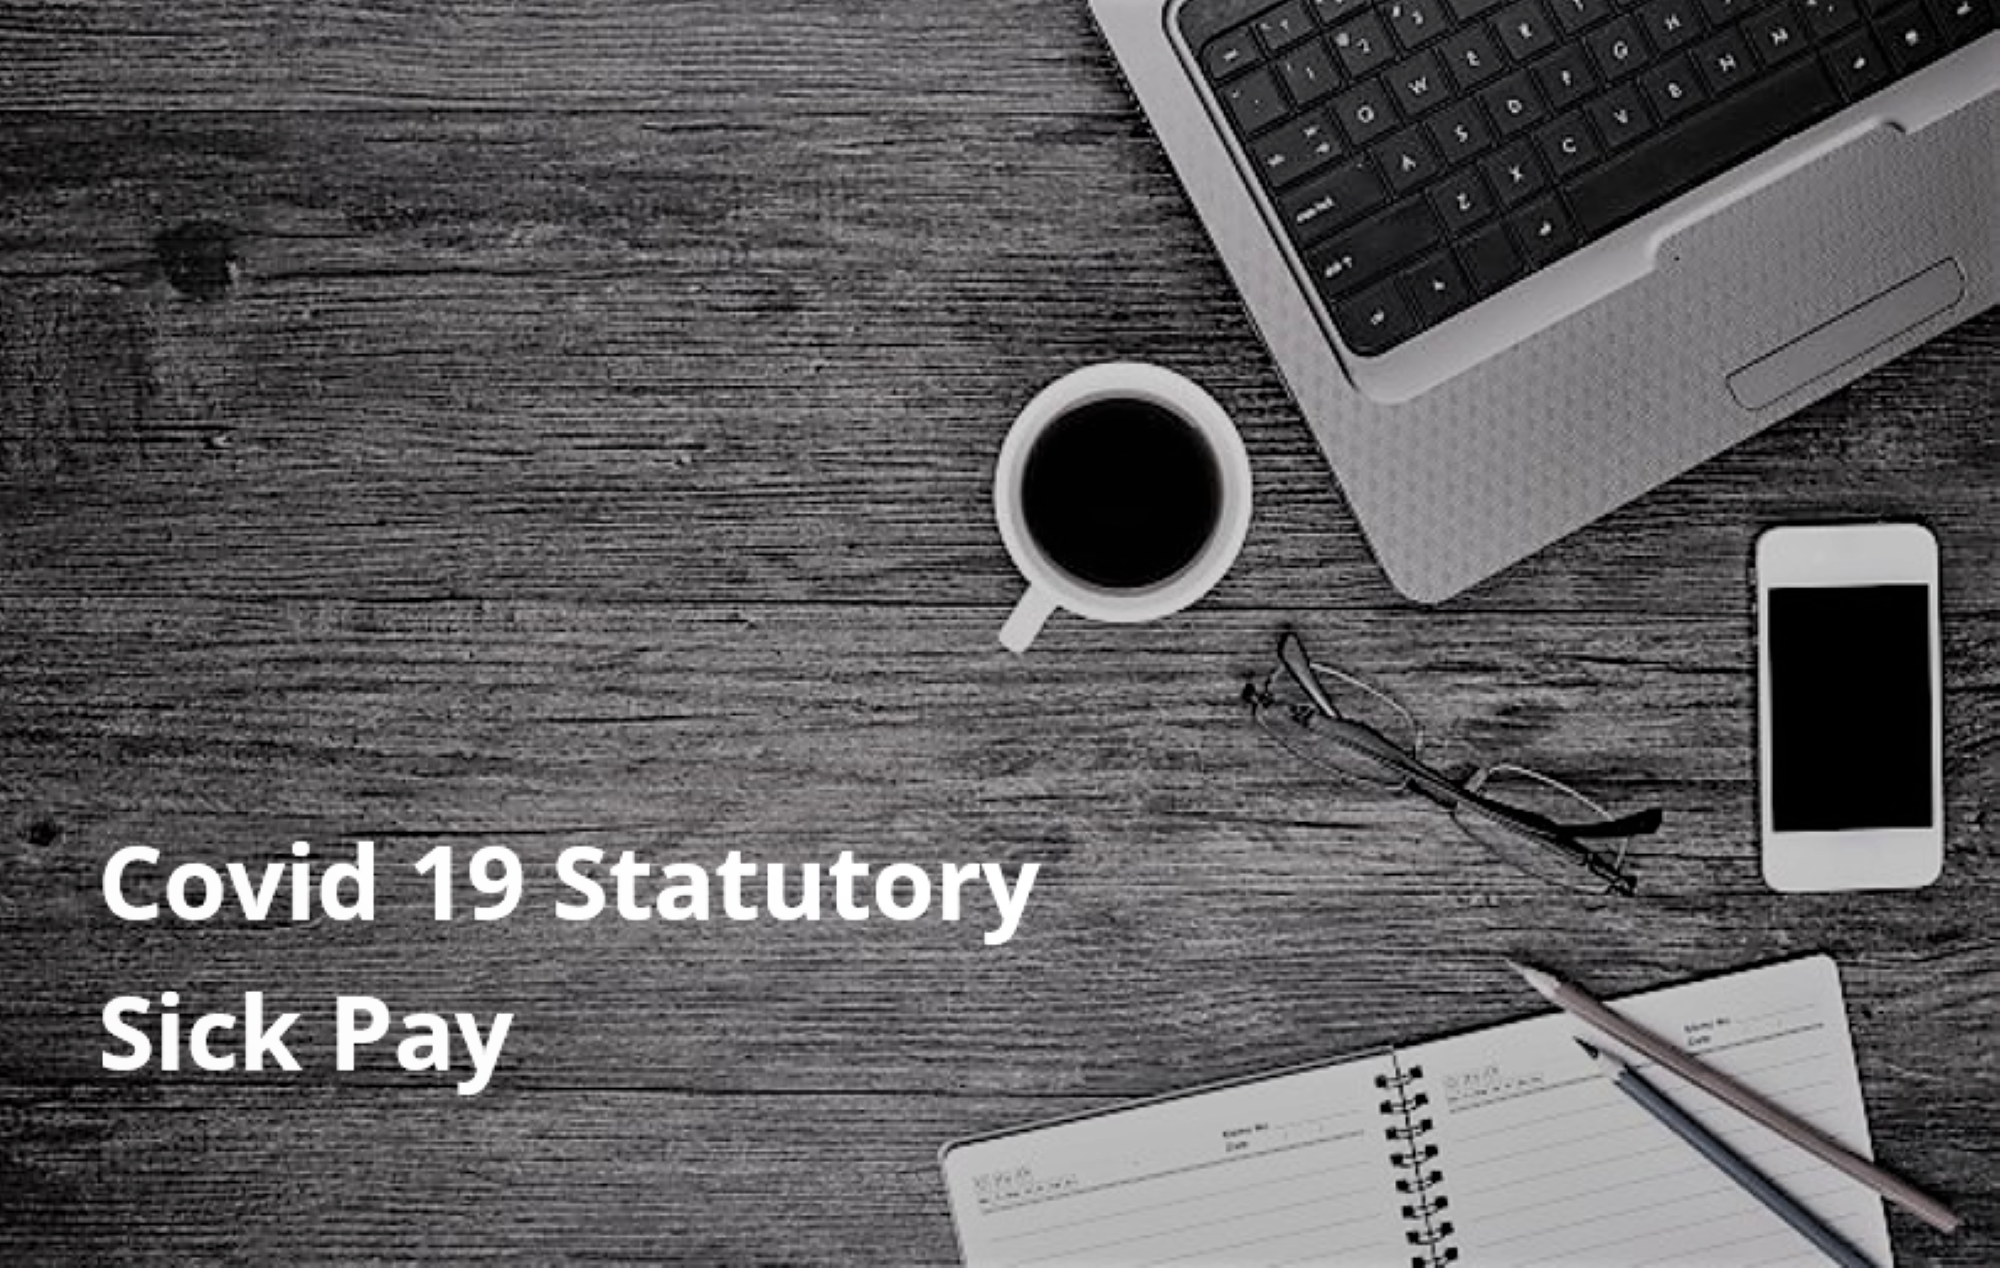 Claiming Rebate of Covid 19 Related Statutory Sick Pay